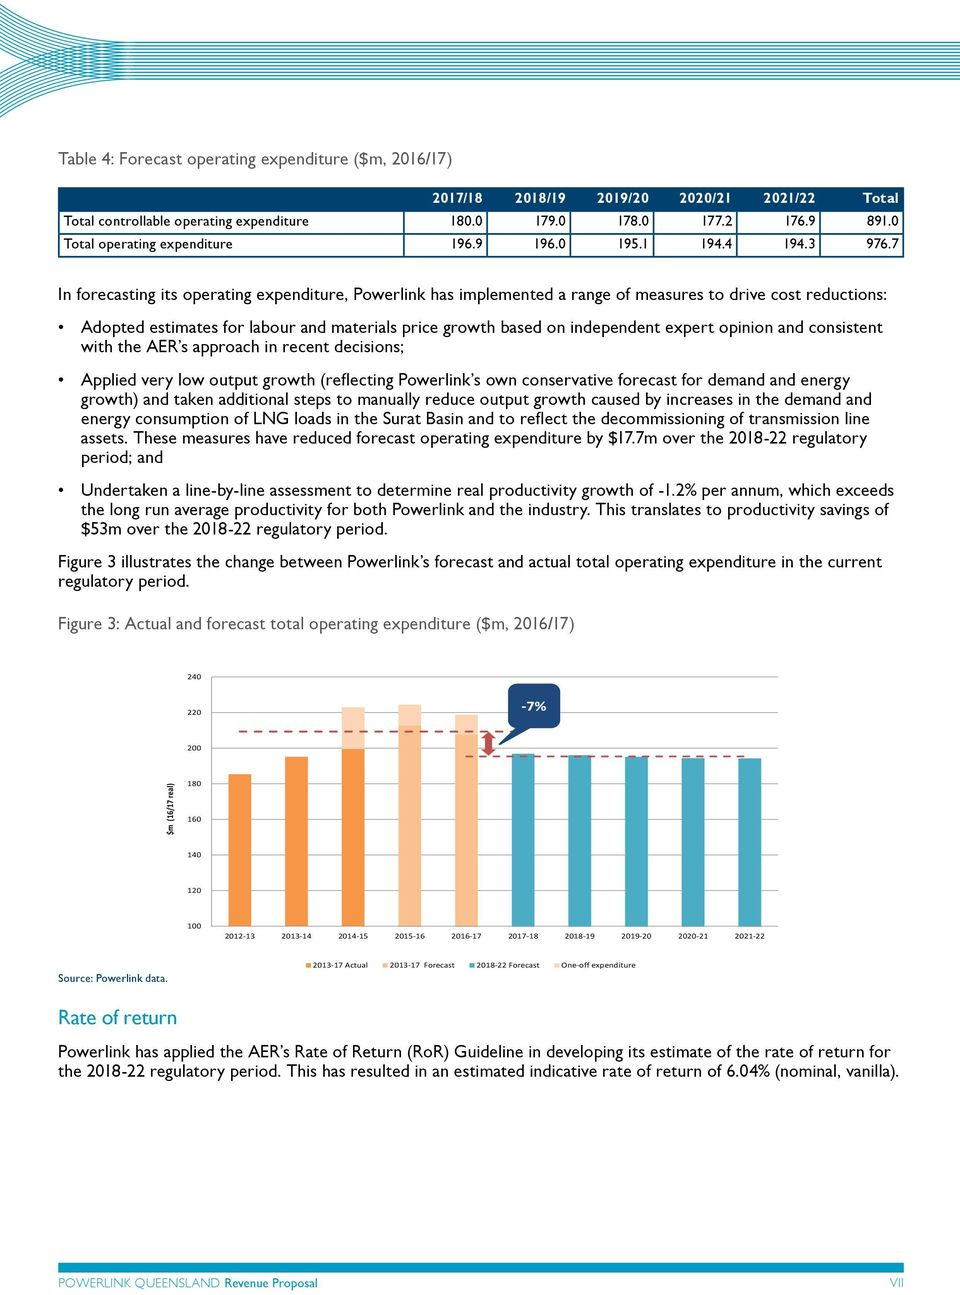 7 In forecasting its operating expenditure, Powerlink has implemented a range of measures to drive cost reductions: Adopted estimates for labour and materials price growth based on independent expert